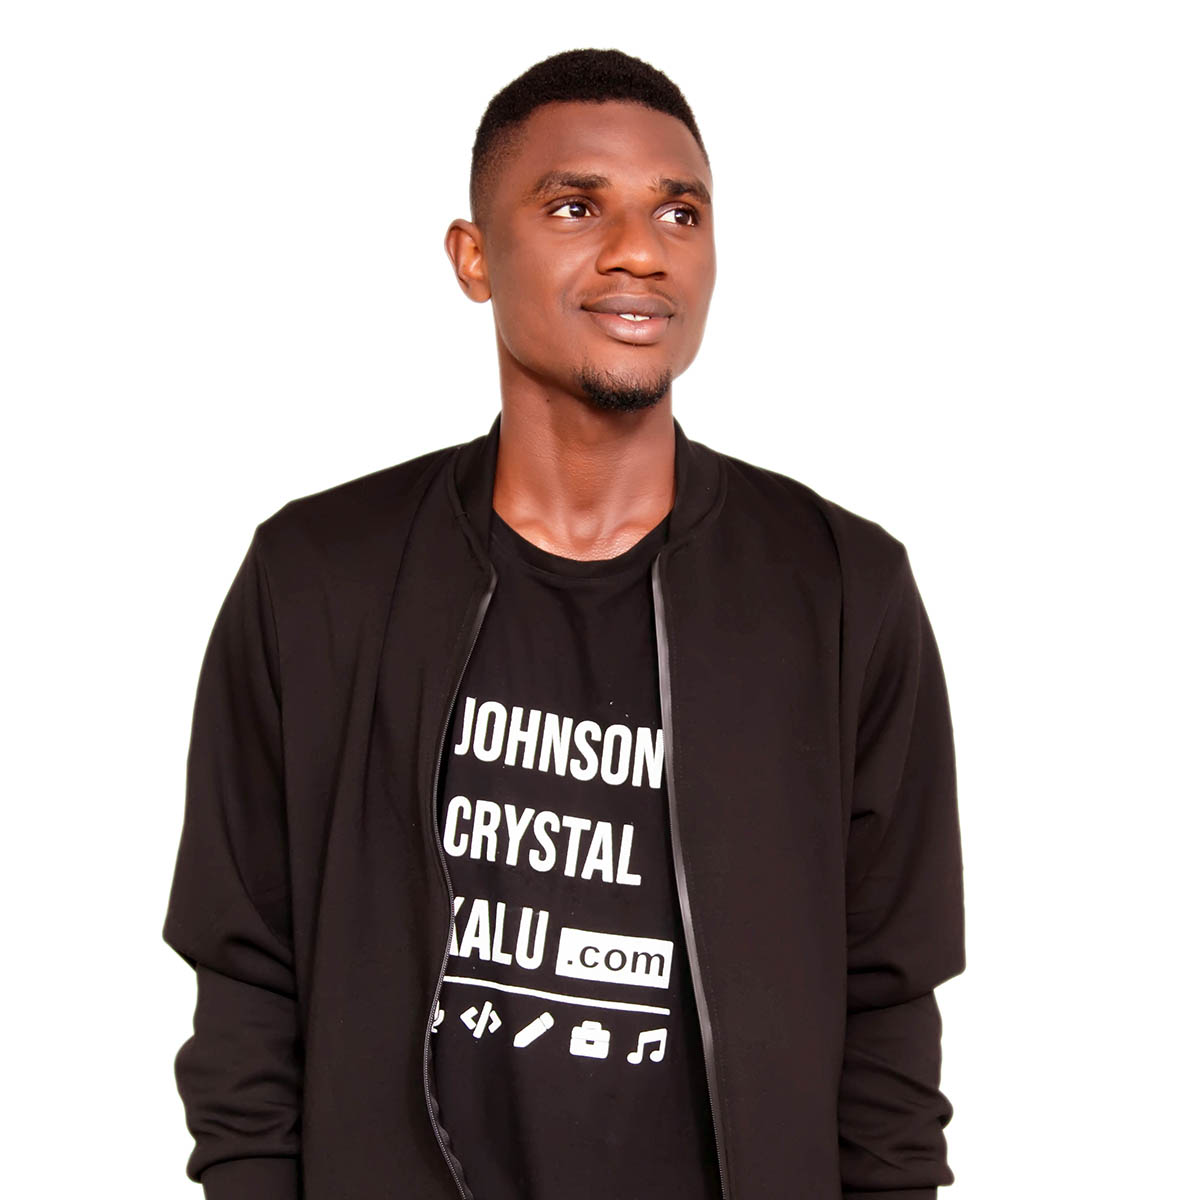 Johnson Crystal Kalu